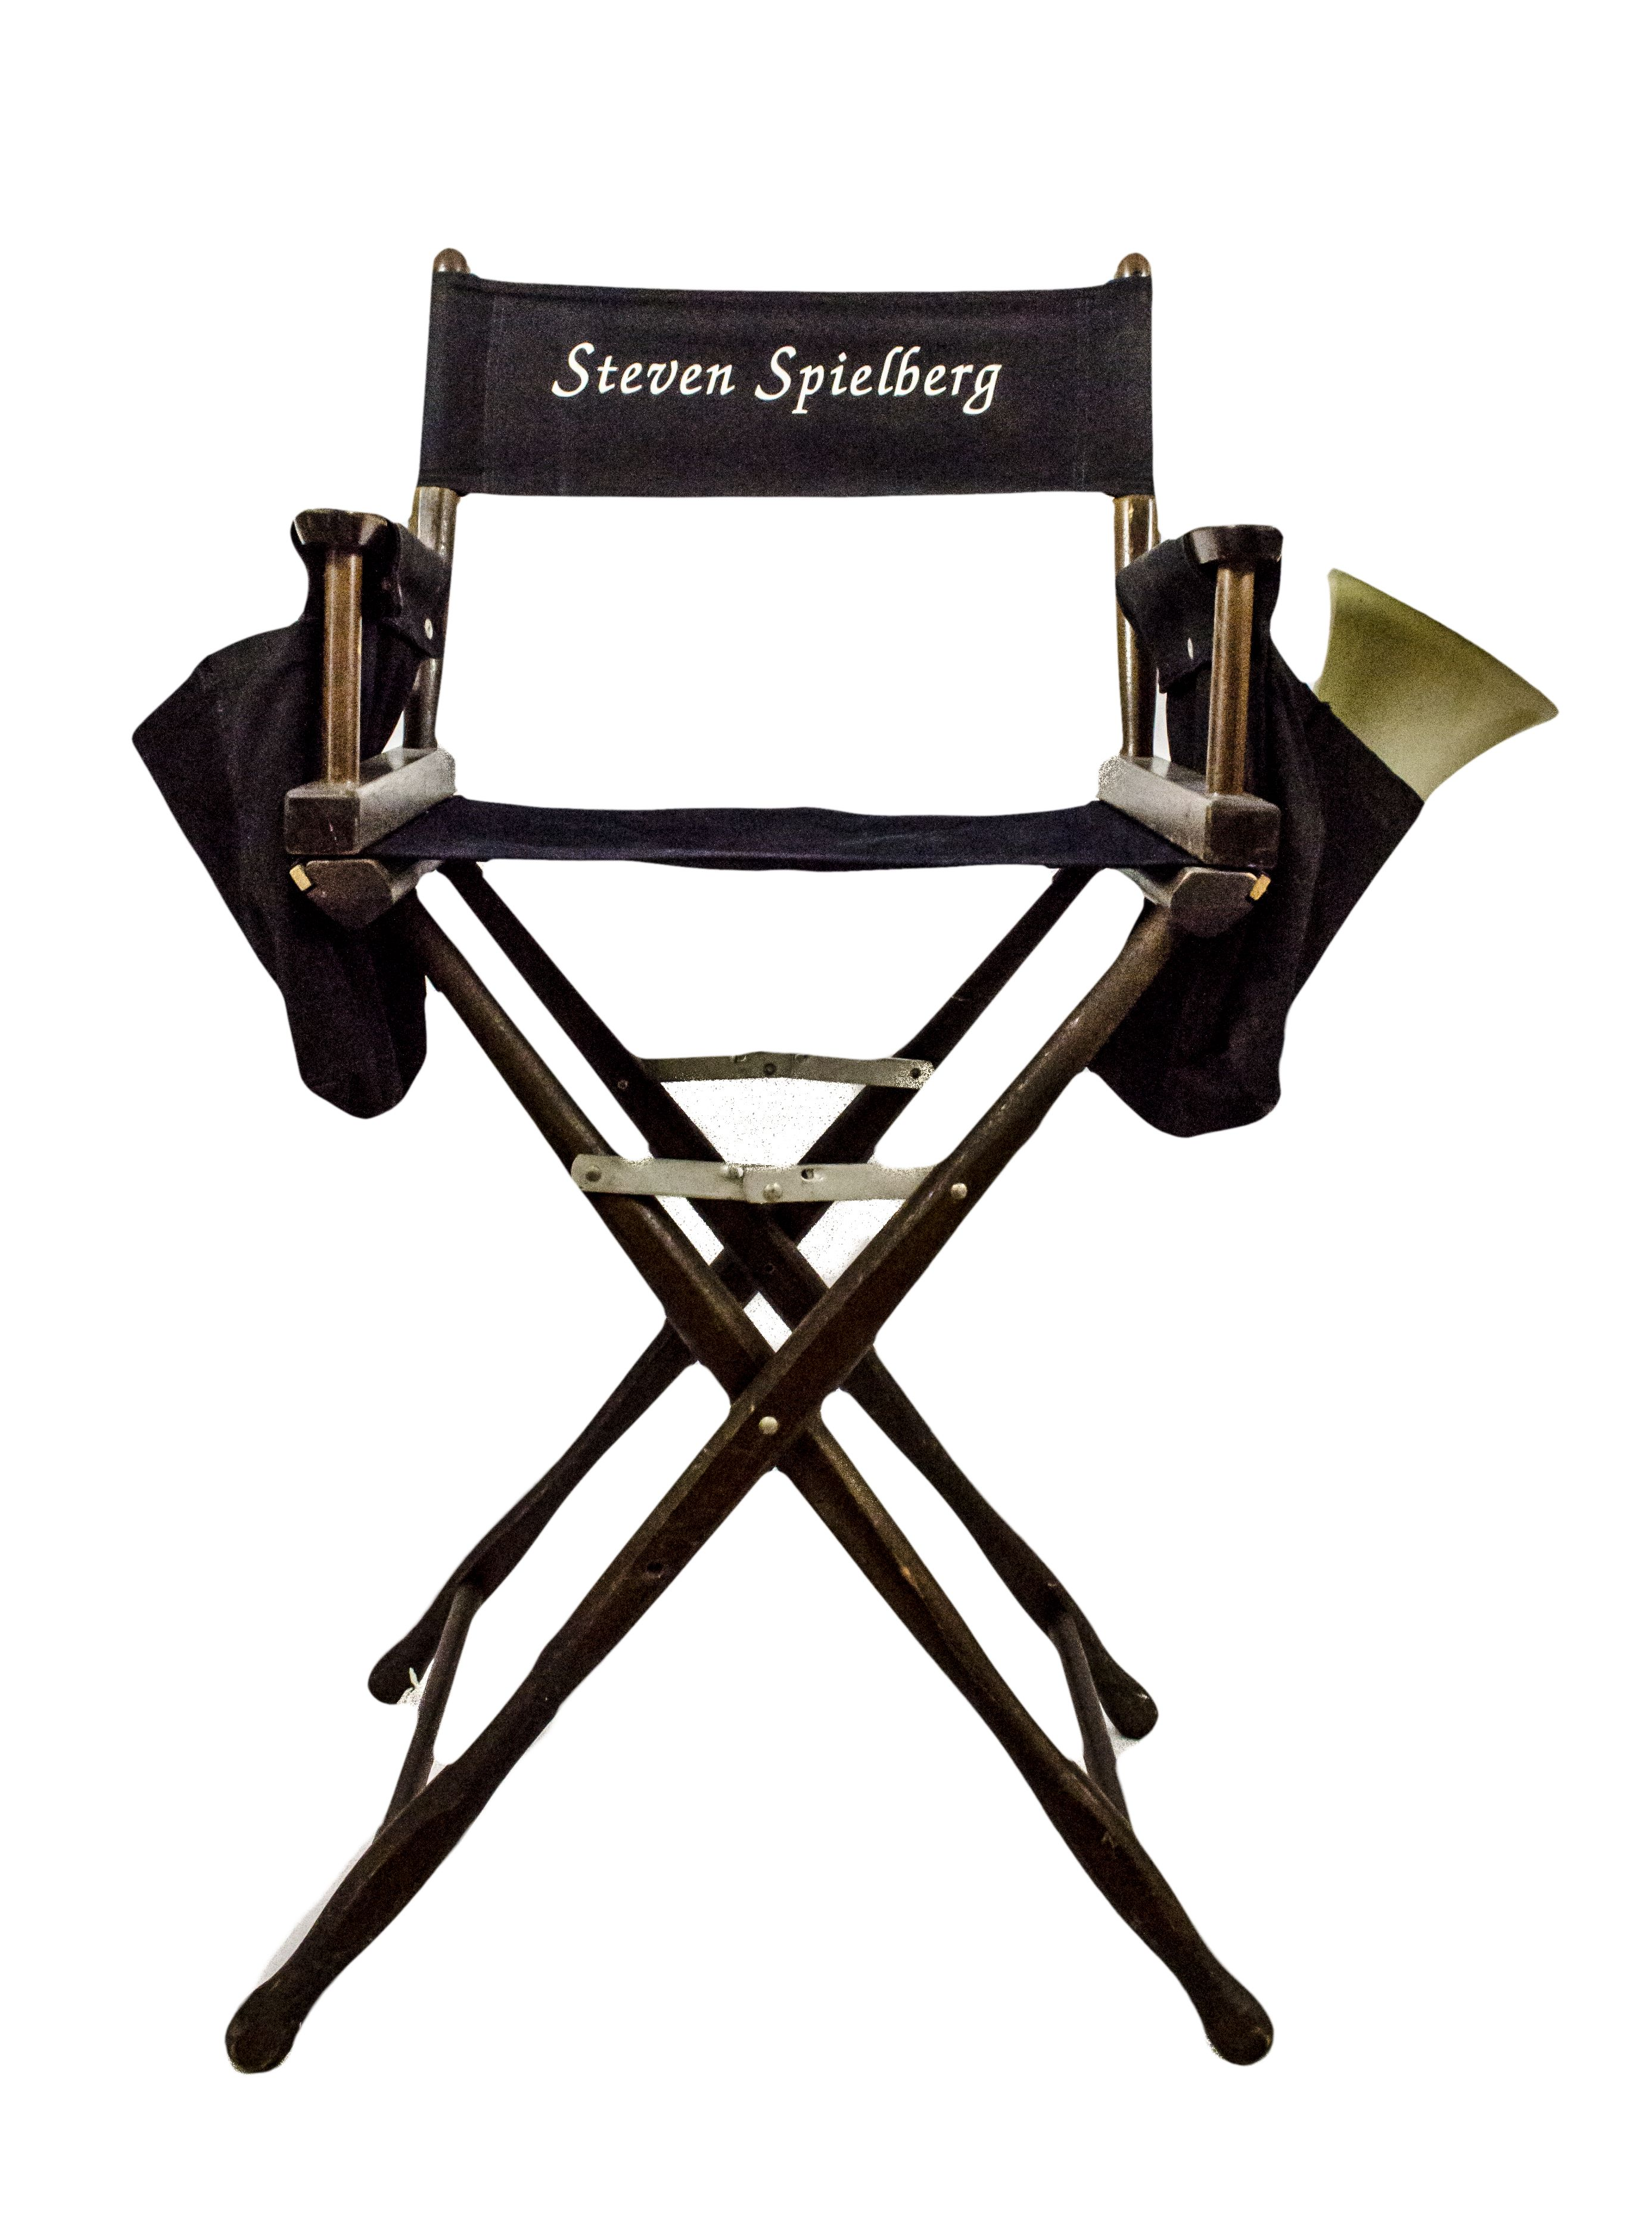 folding directors chair tall the is against wall shirt lot detail - steven spielberg for movie amistad